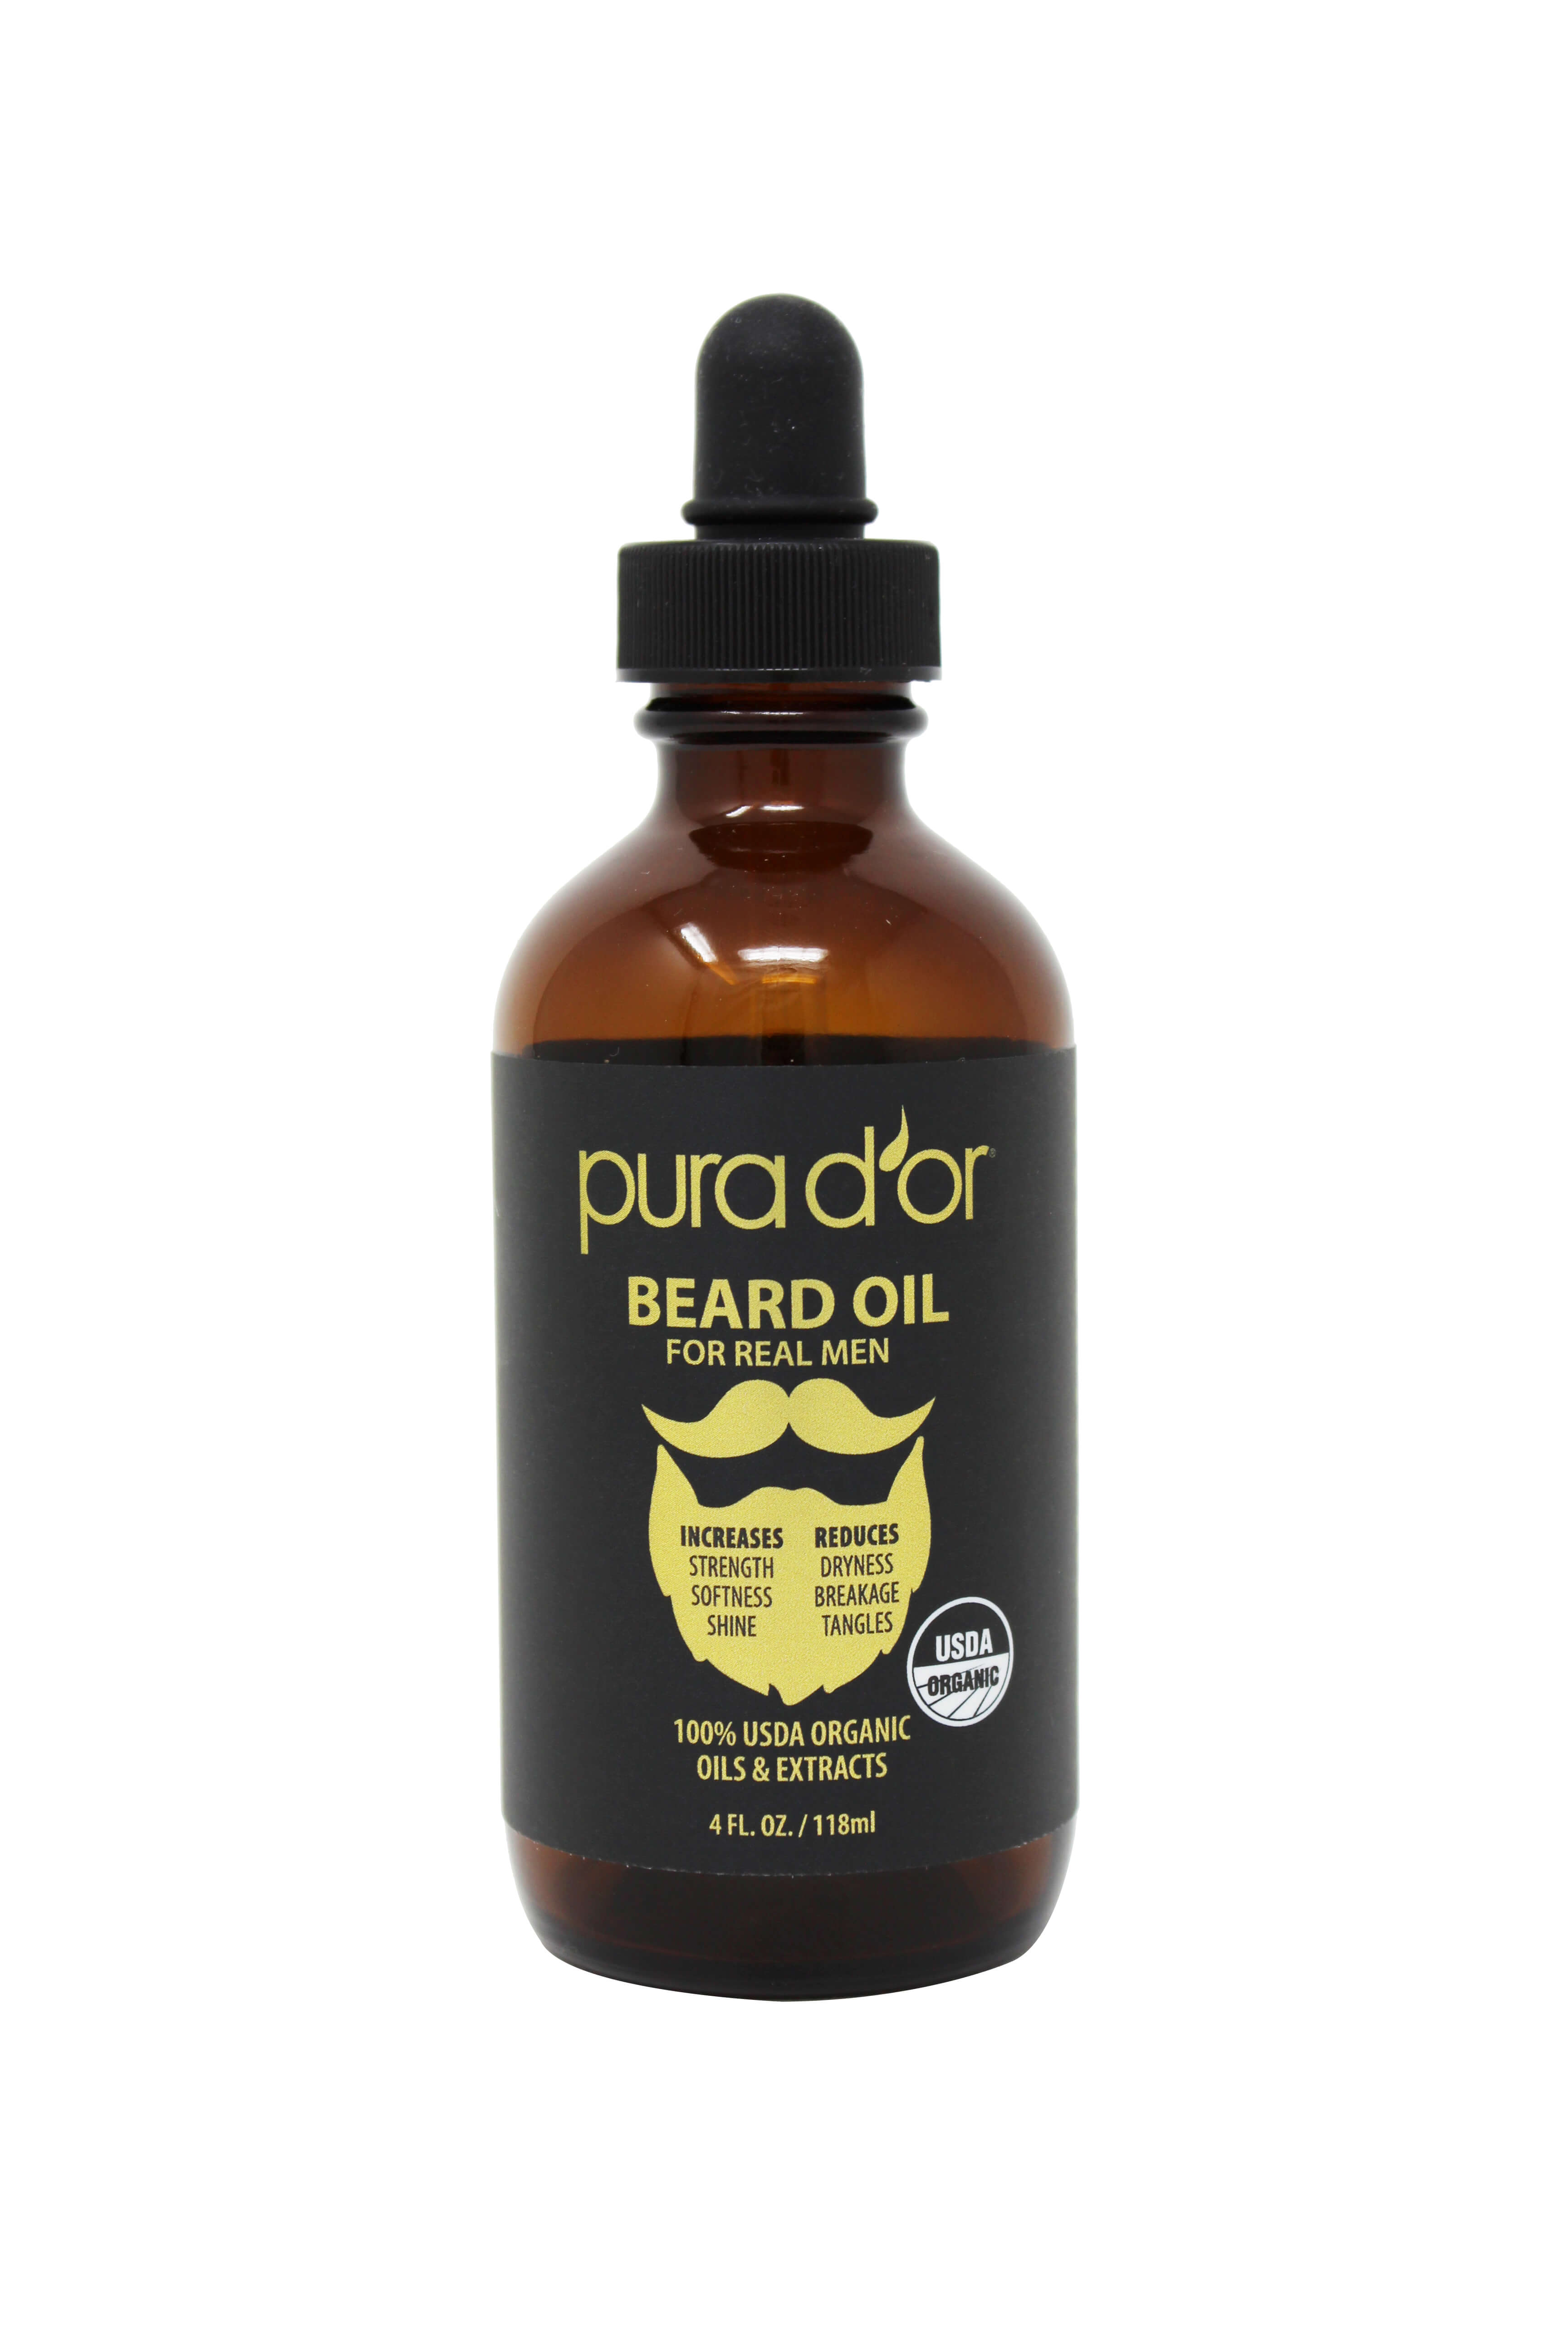 Pura D'or's USDA-Certfied Organic Beard Oil